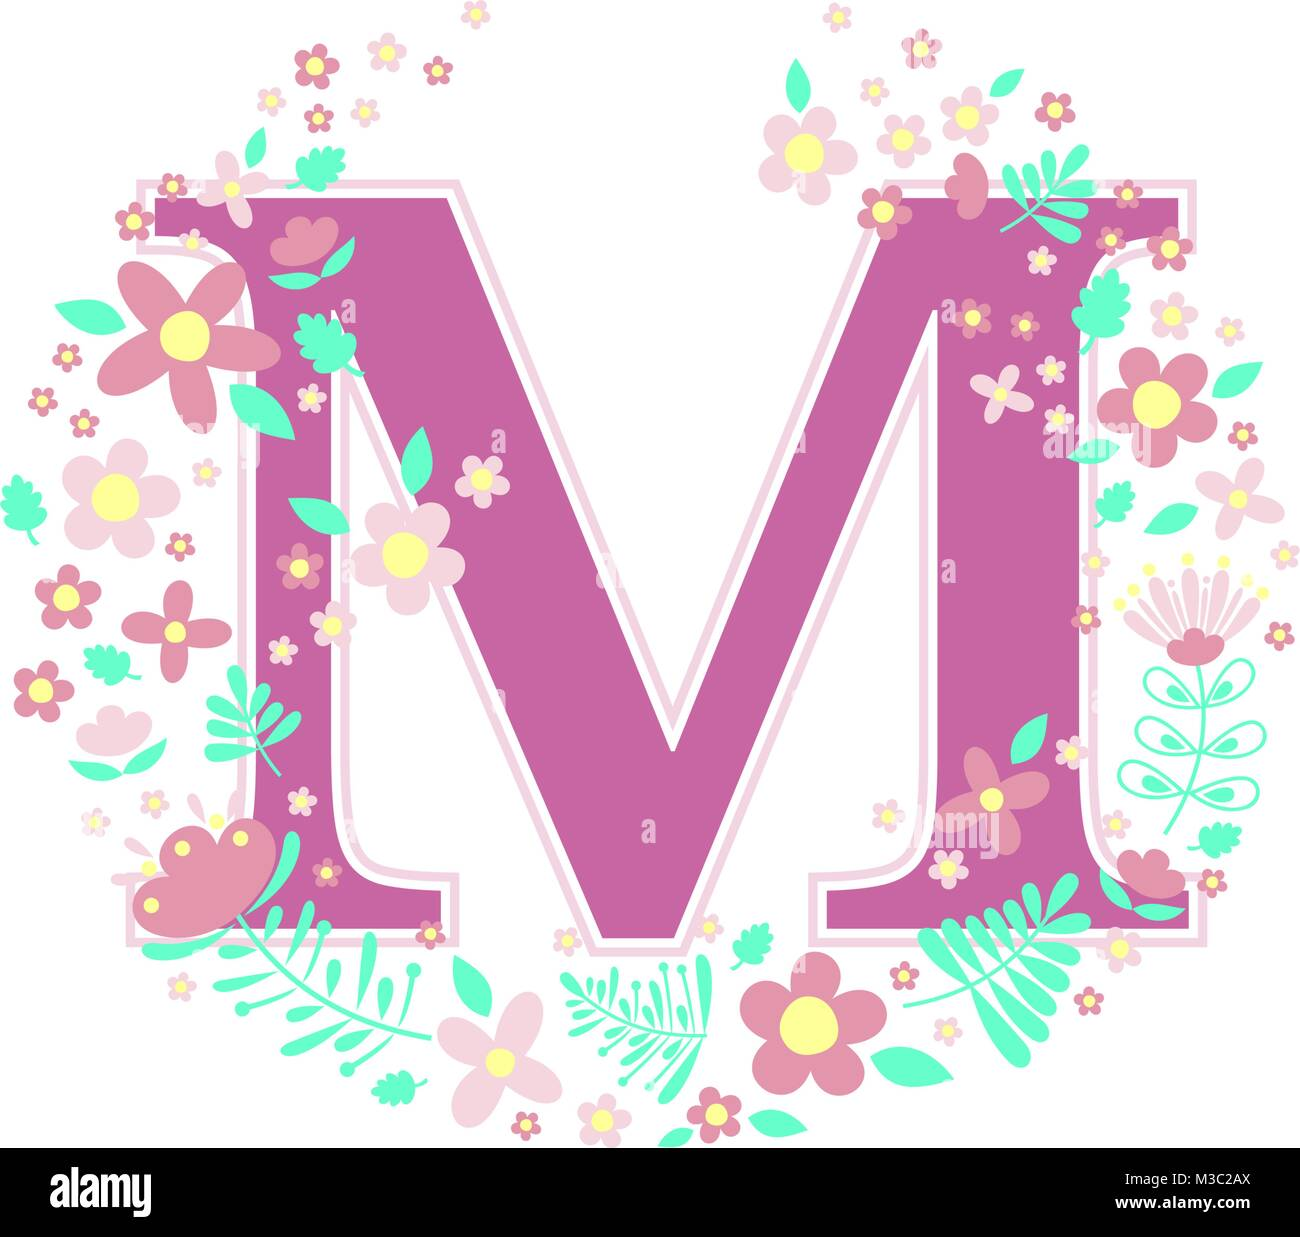 Letter M Stock Vector Images - Alamy